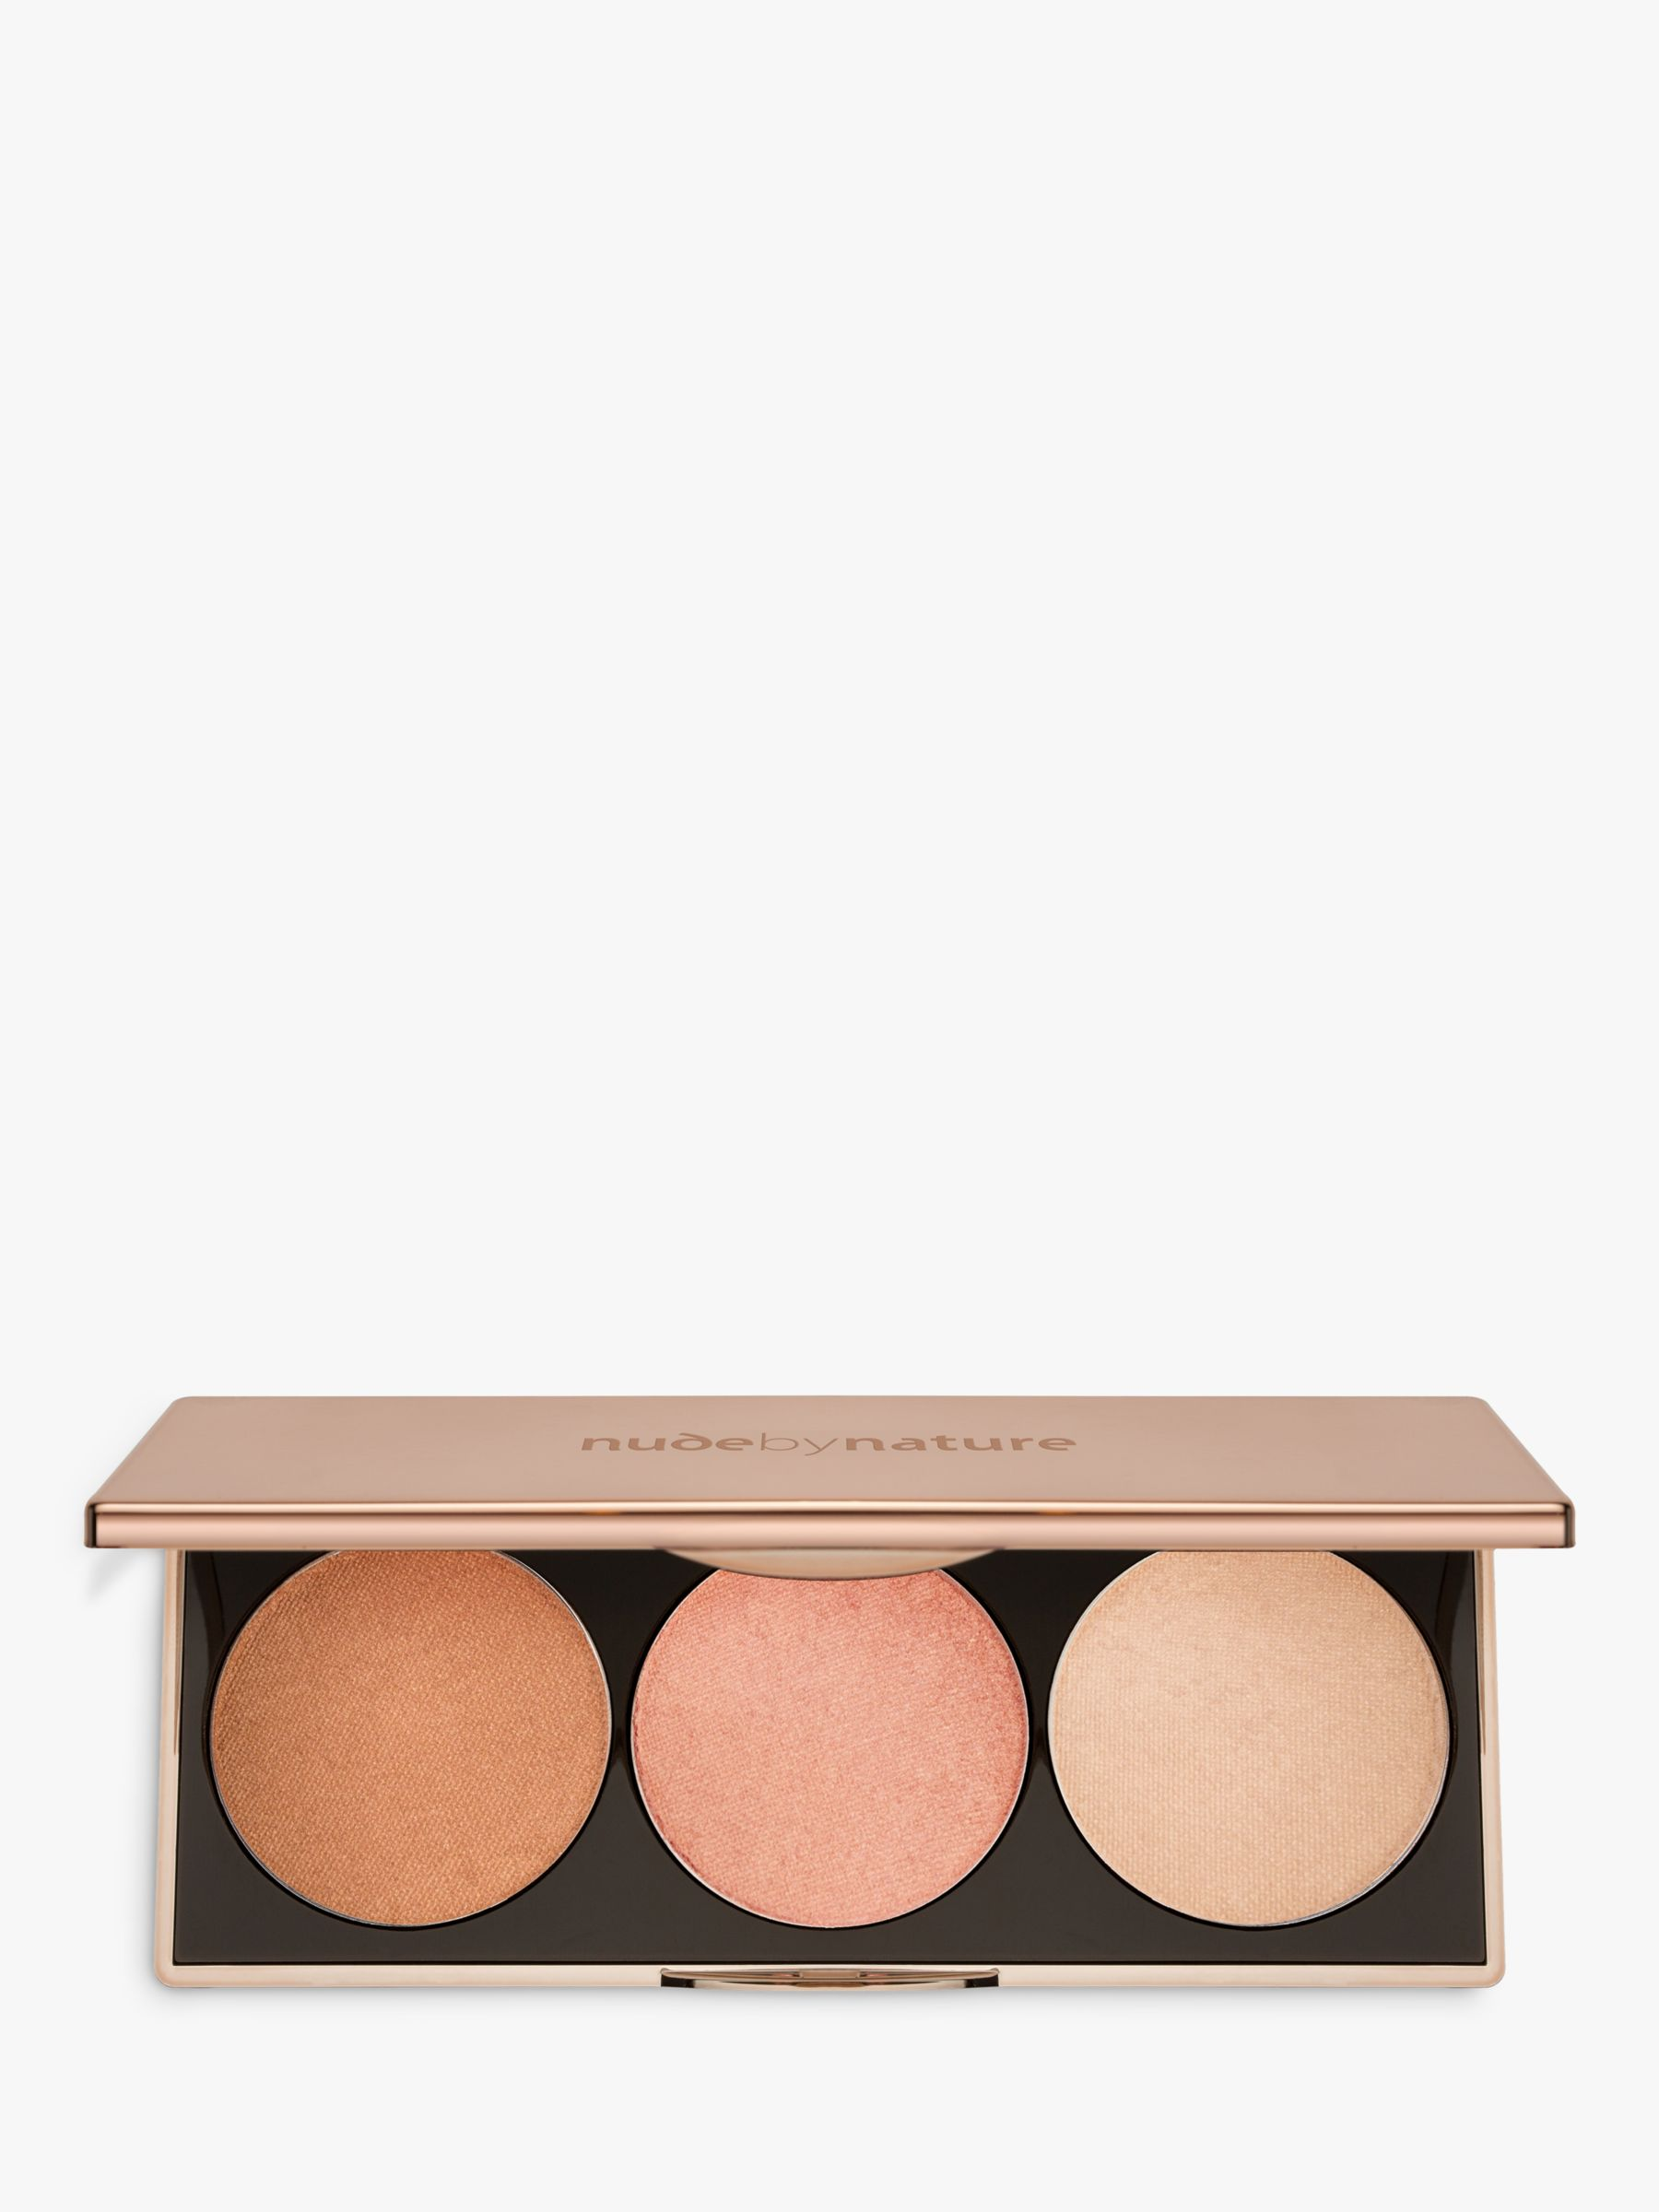 Nude by Nature Nude by Nature Highlight Palette, Multi